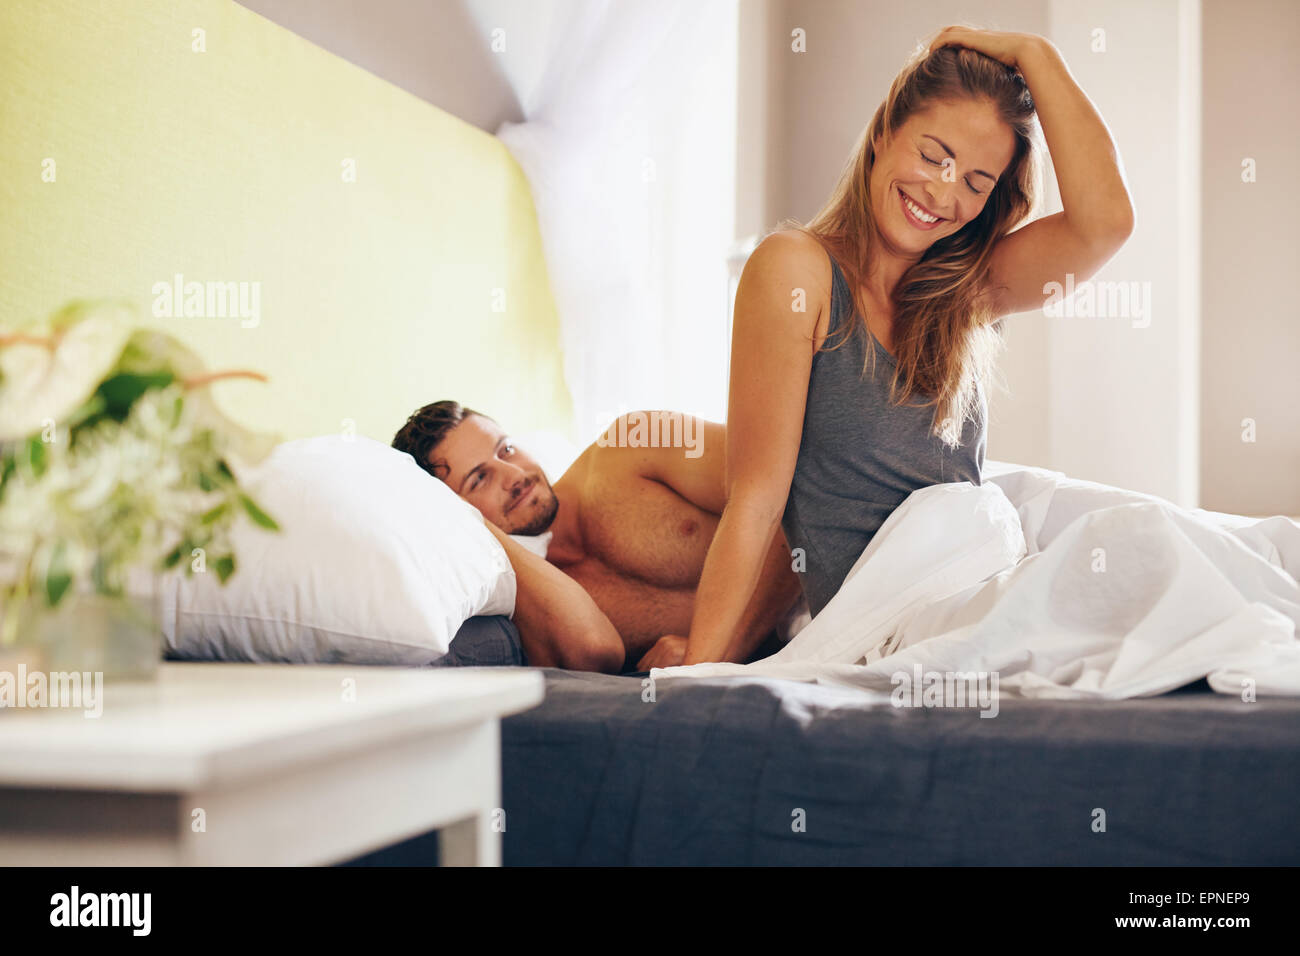 Happy young couple waking up in the morning on bed. Young man and woman smiling, feeling relaxed in morning. - Stock Image